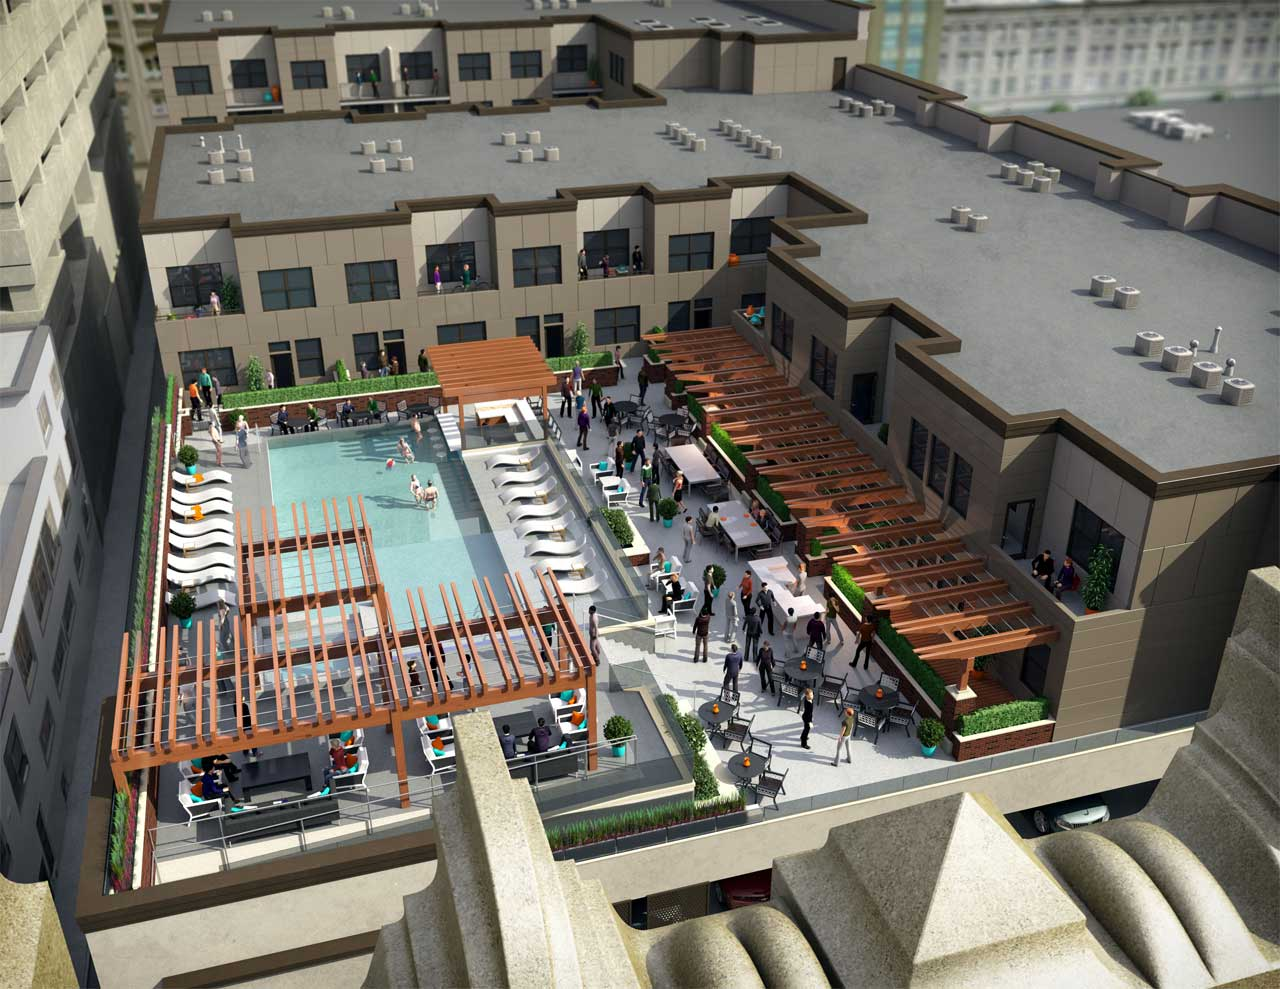 Aerial view of the swimming pool and entertainment area for a proposed luxury apartment rooftop.